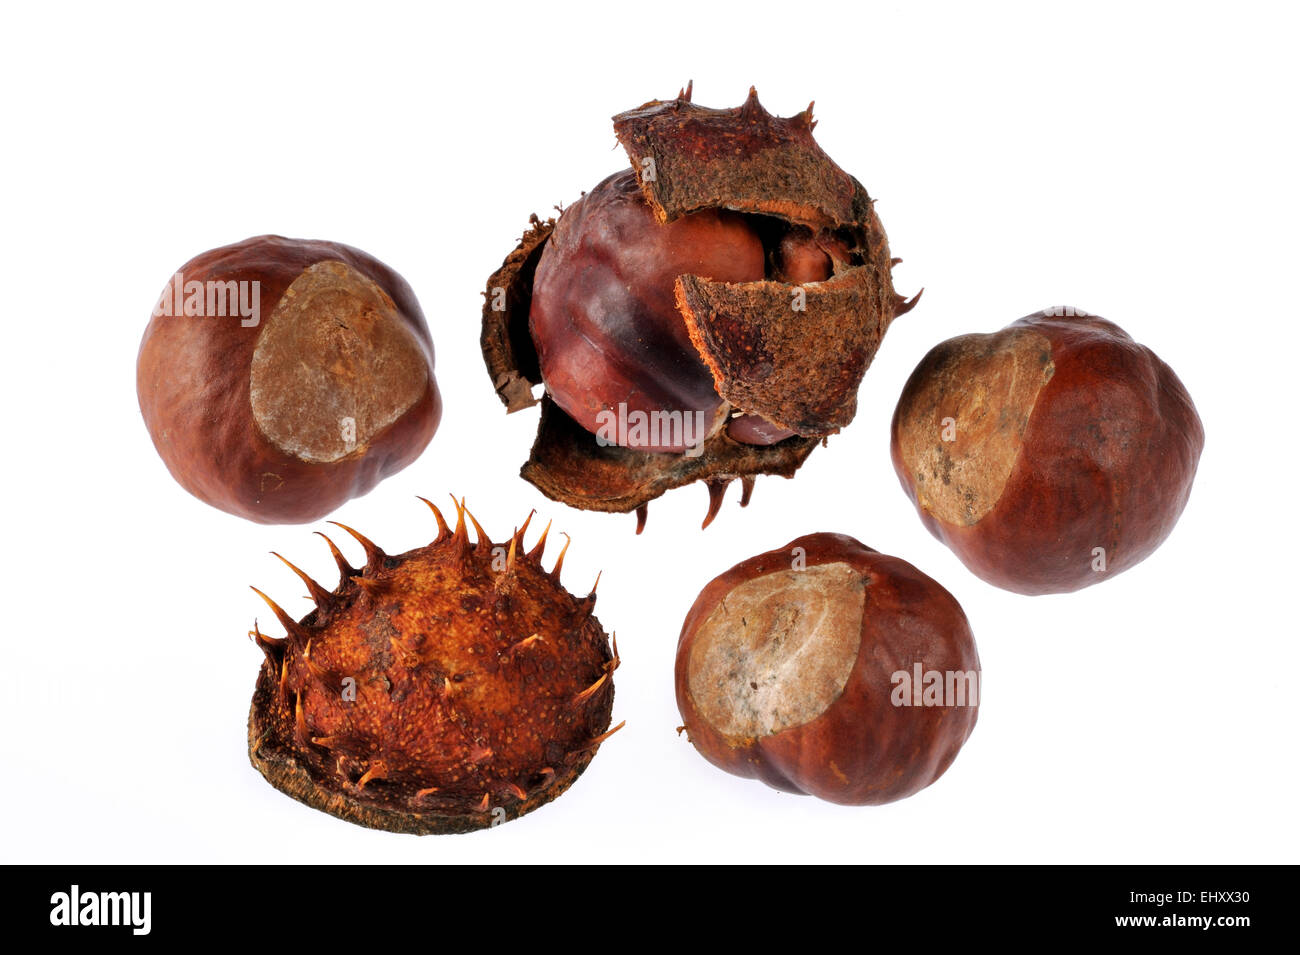 Horse chestnut / conker tree conkers / chestnuts (Aesculus hippocastanum) against white background - Stock Image